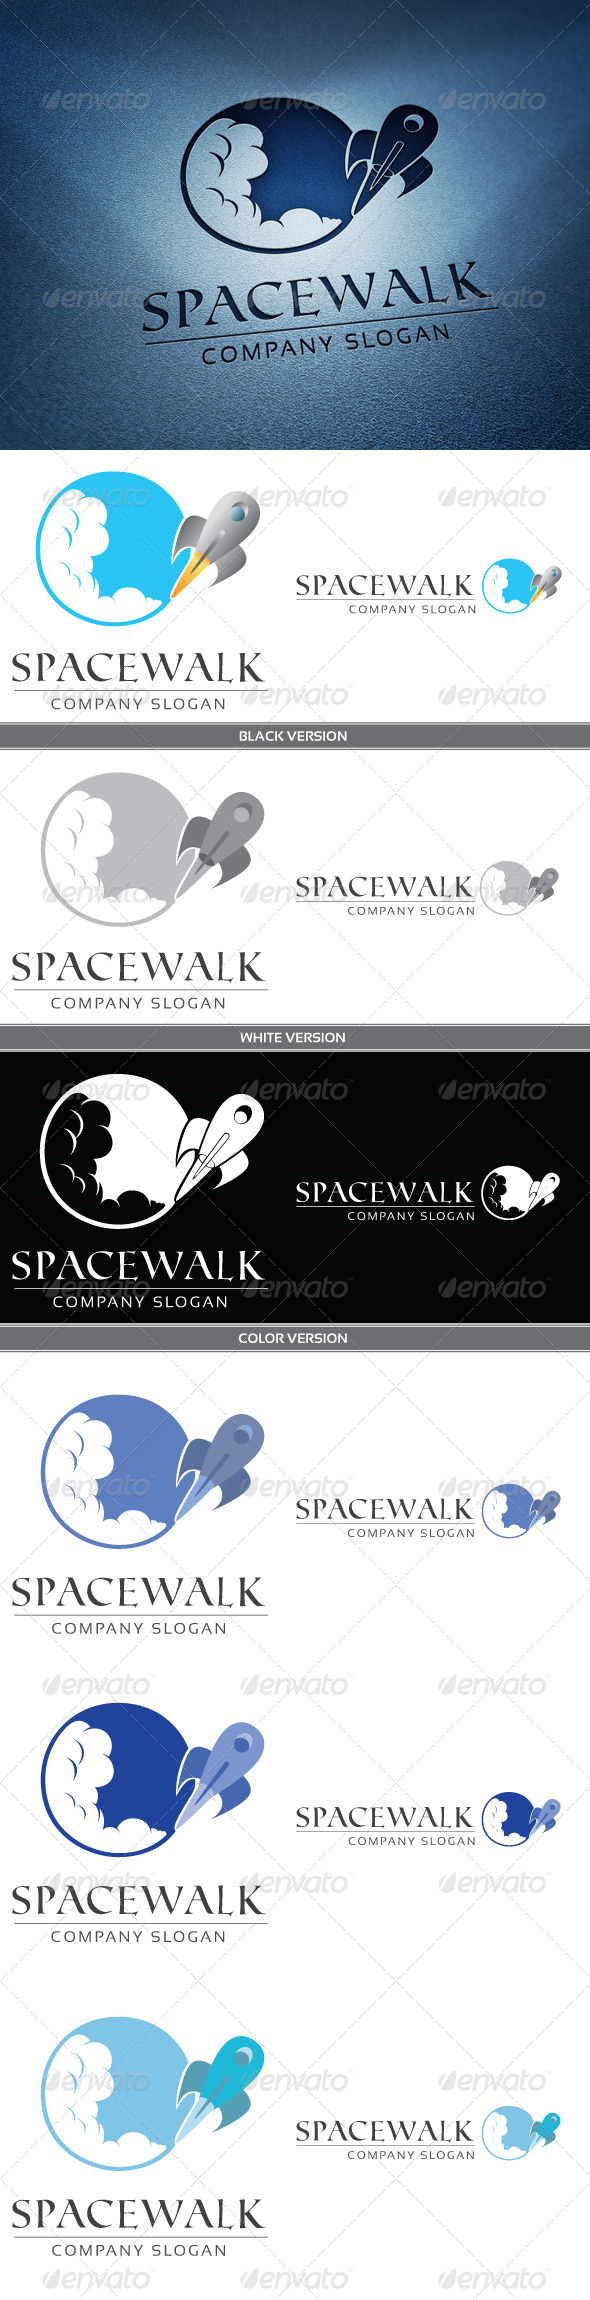 GraphicRiver Spacewalk 3602644